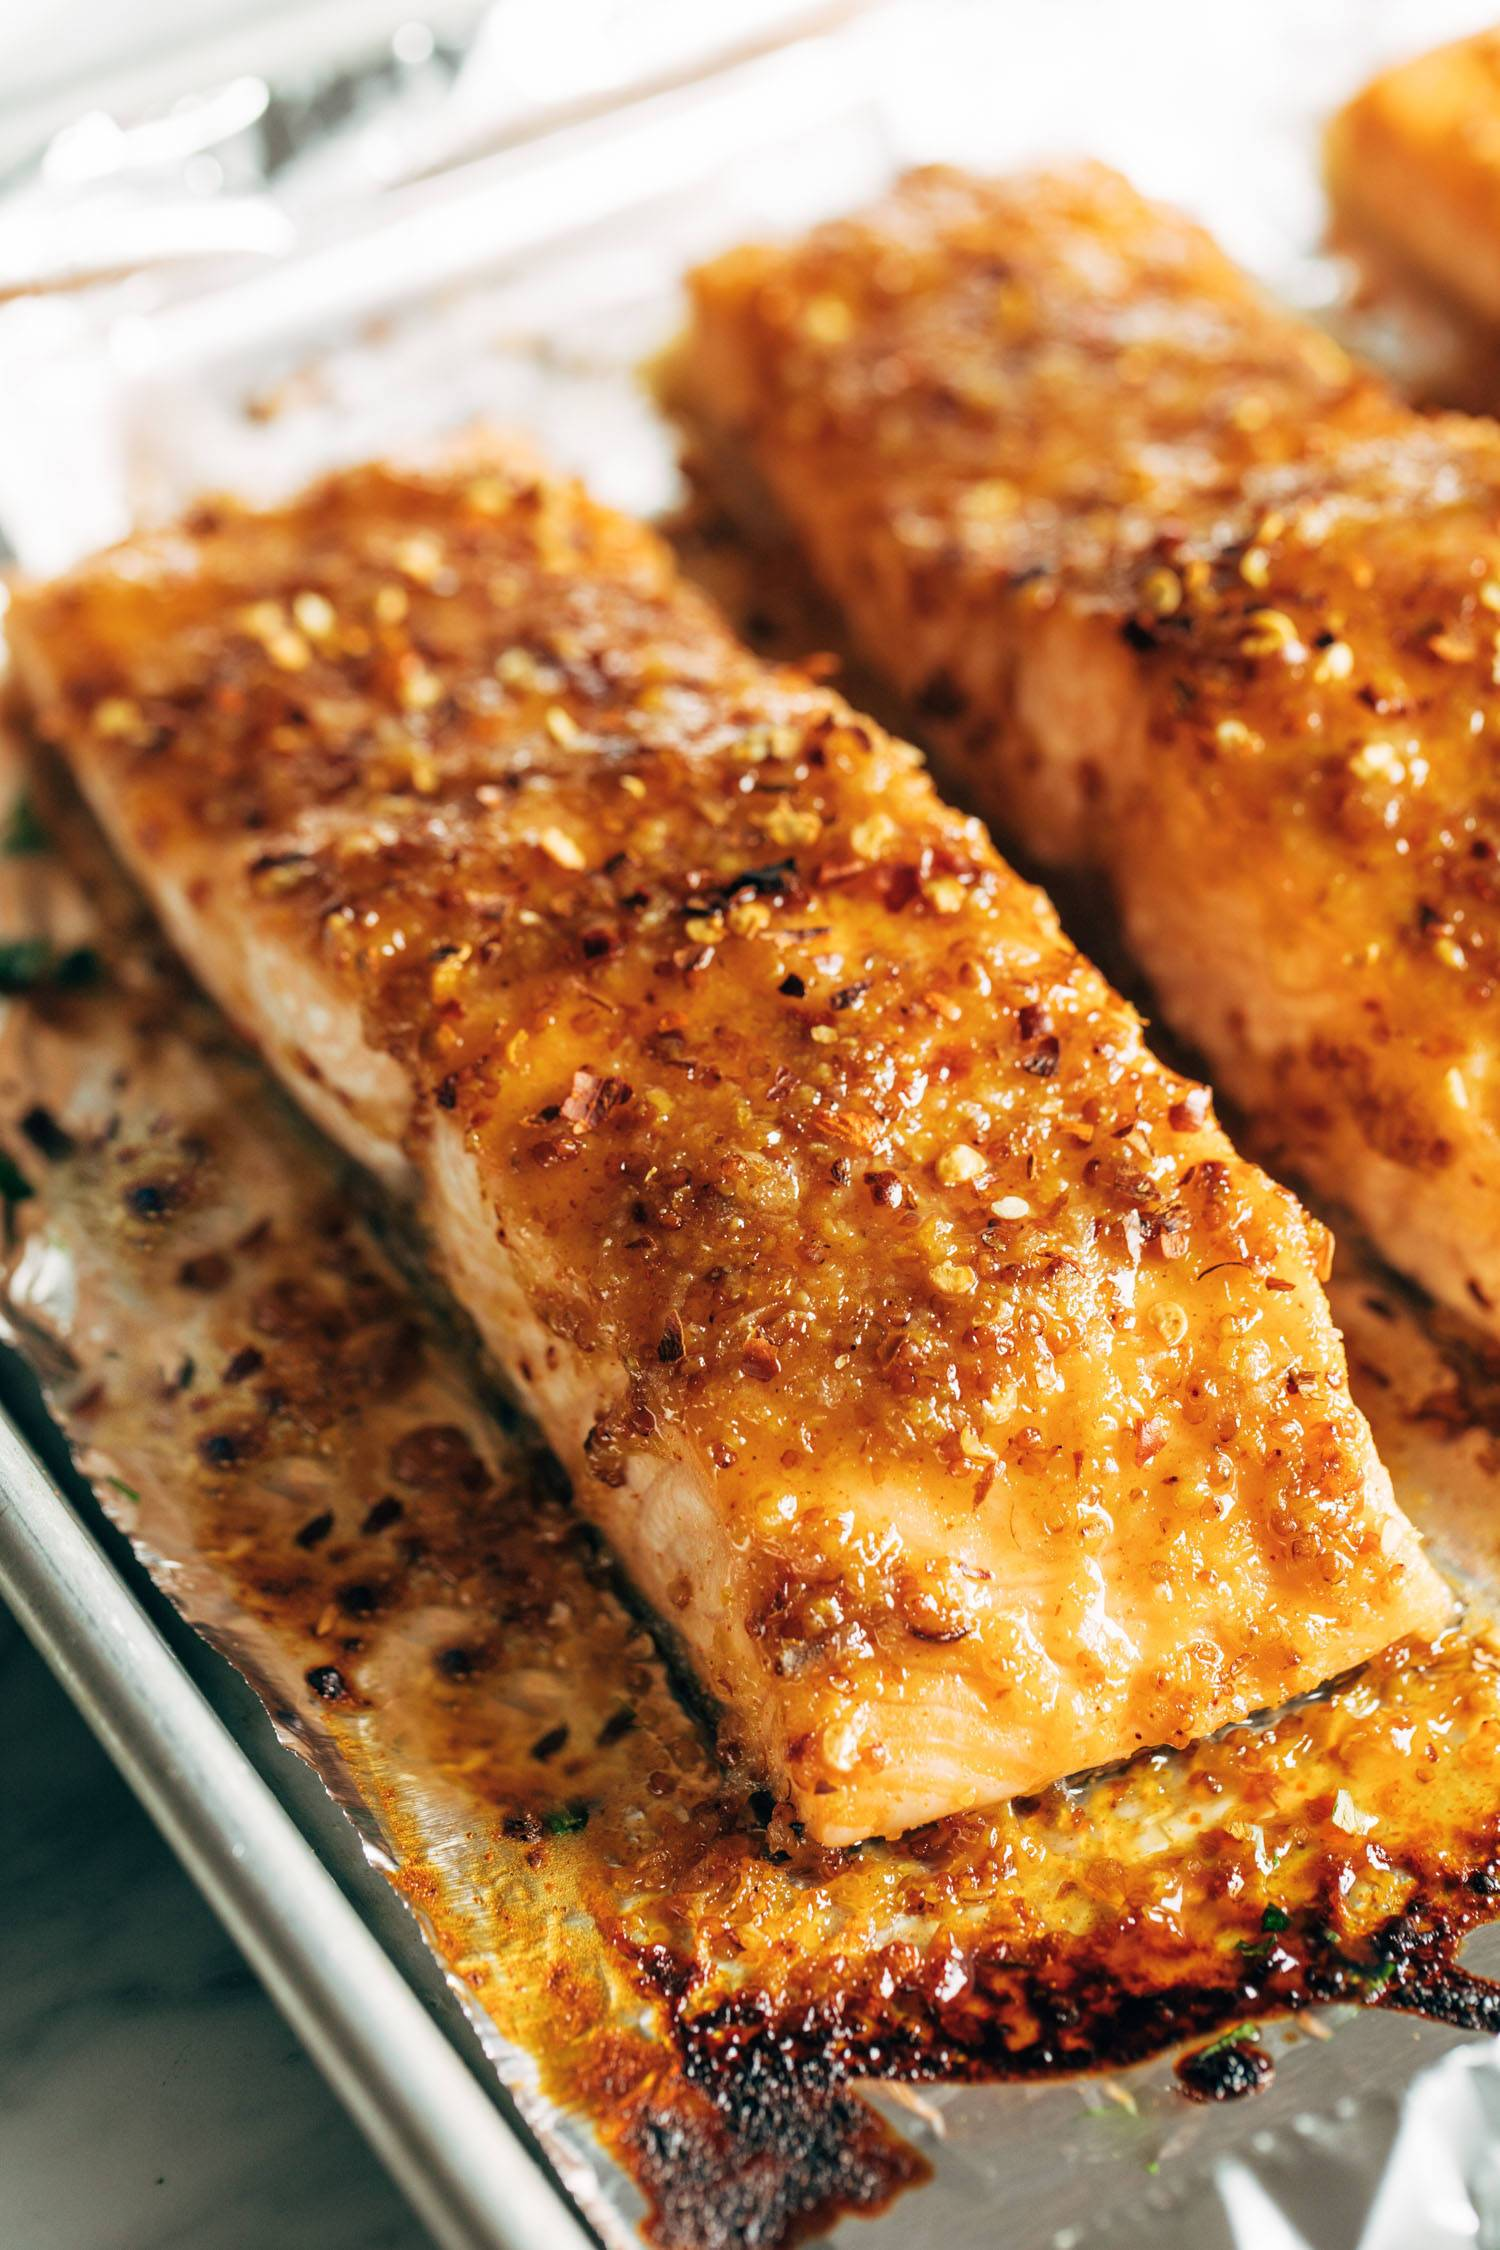 Hot honey salmon on a sheet pan lined with foil.